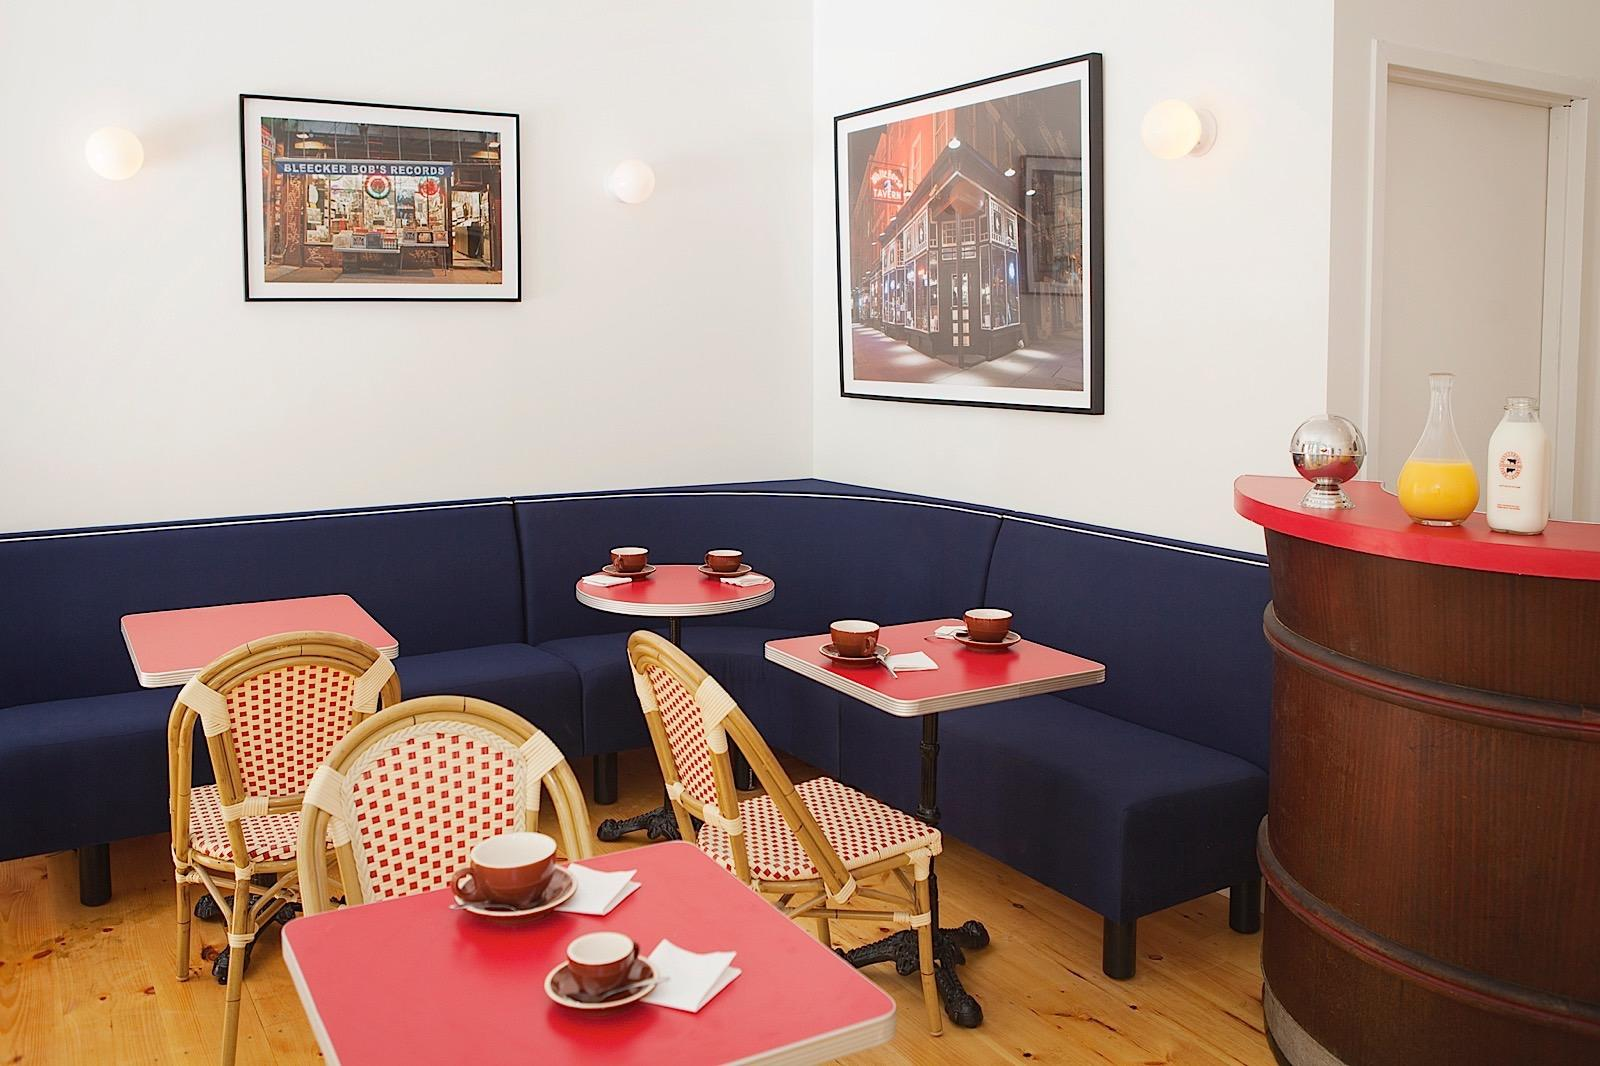 French Cafe Interior with seating and coffee